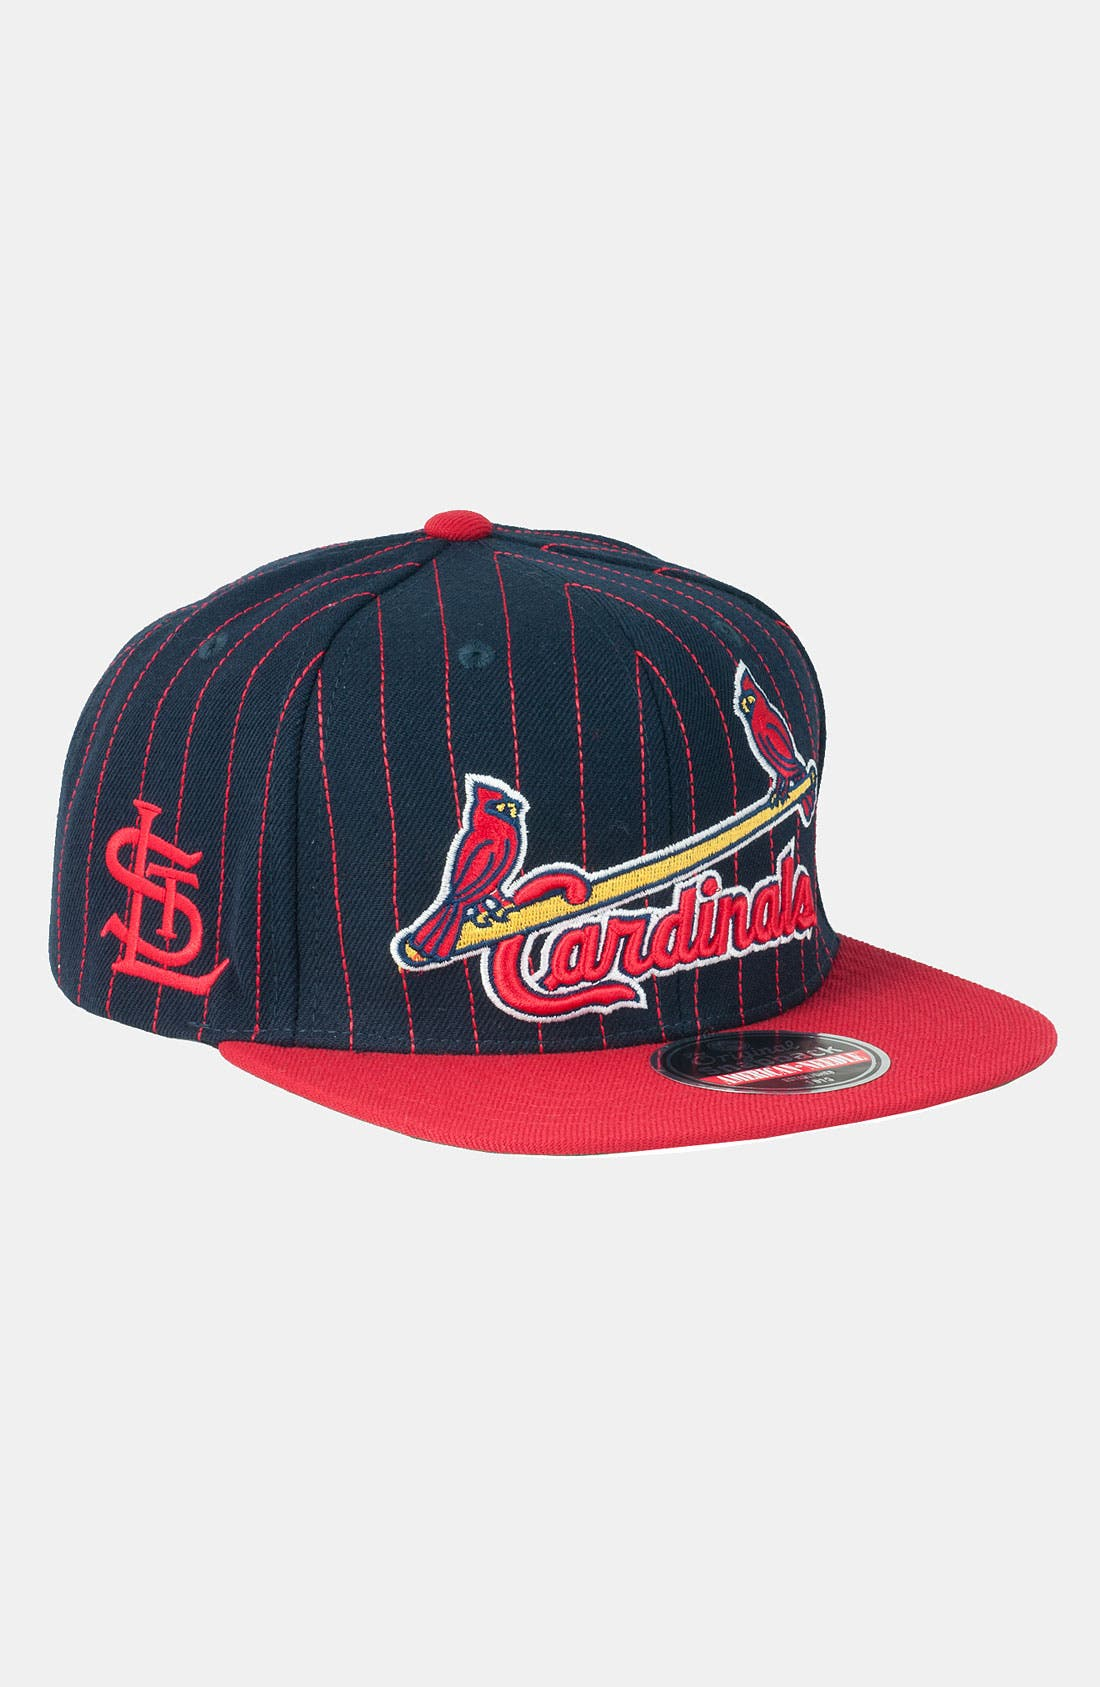 Alternate Image 1 Selected - American Needle 'Cardinals' Snapback Baseball Cap